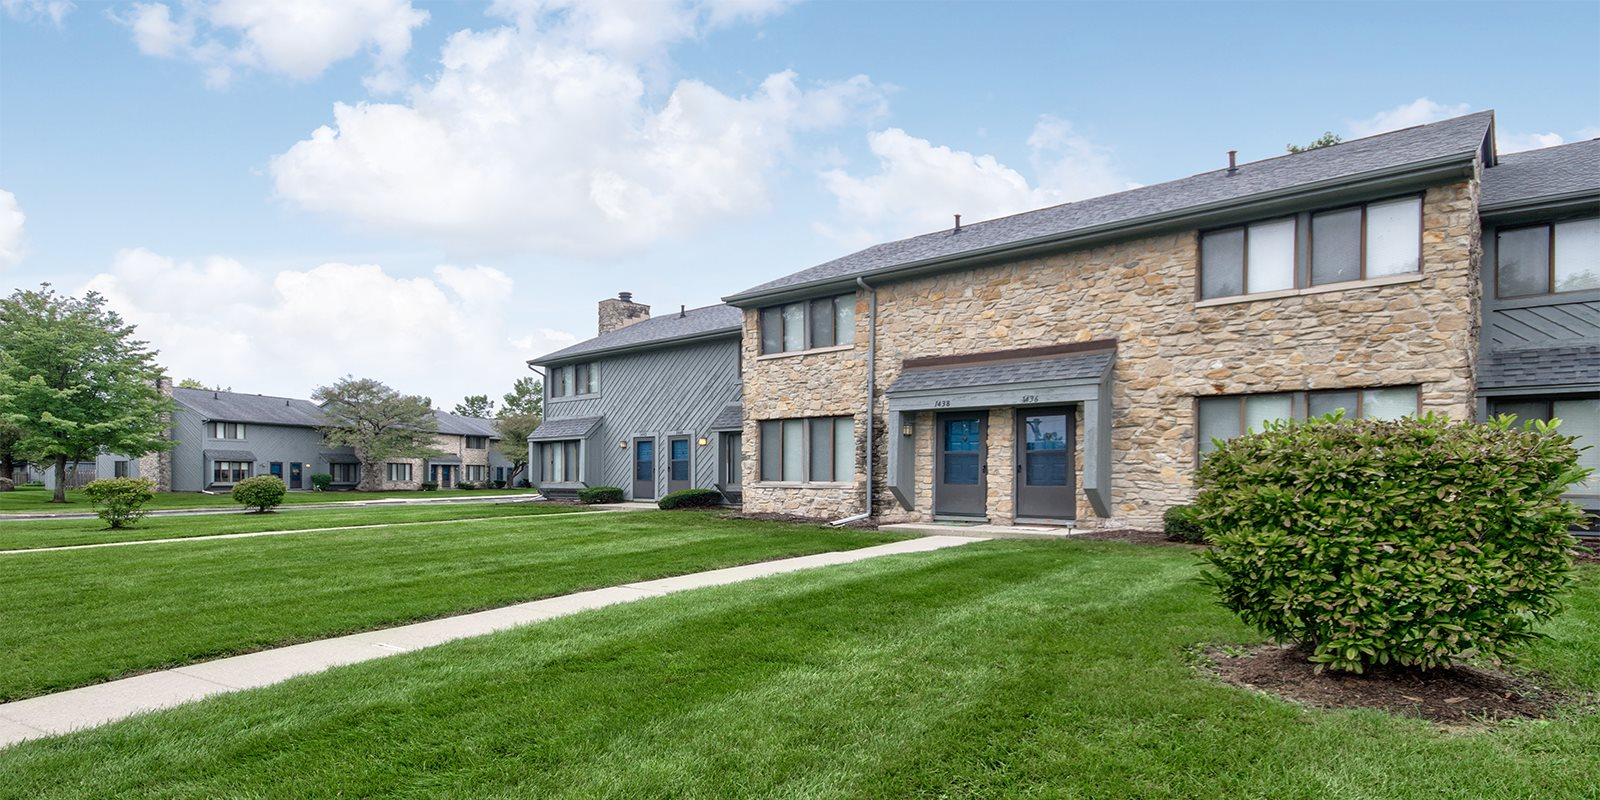 Remarkable Apartments In Indianapolis In Woodlake 46260 Interior Design Ideas Tzicisoteloinfo